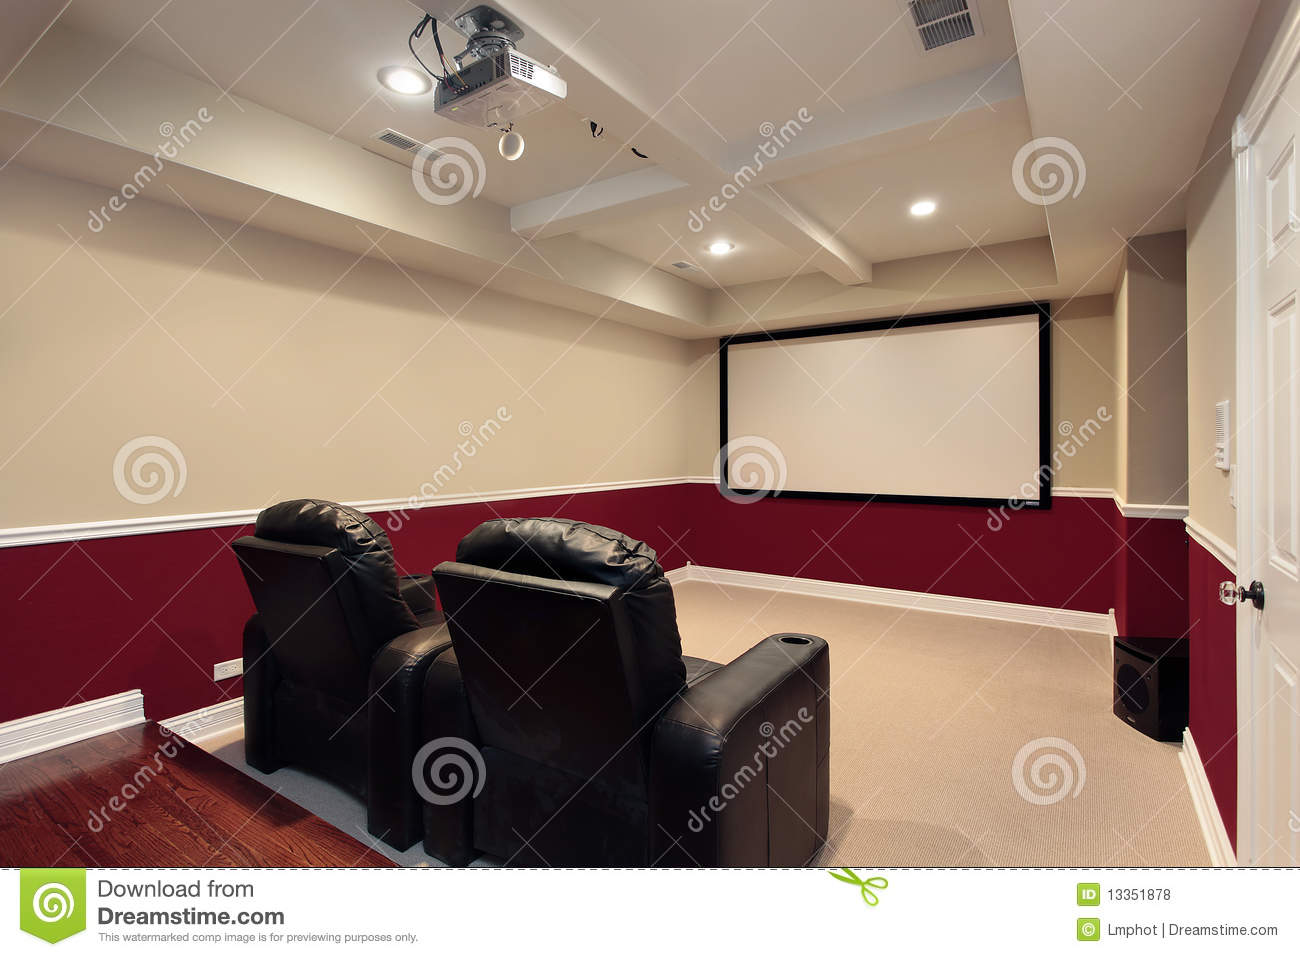 Media Room With Home Theater Chairs Royalty Free Stock